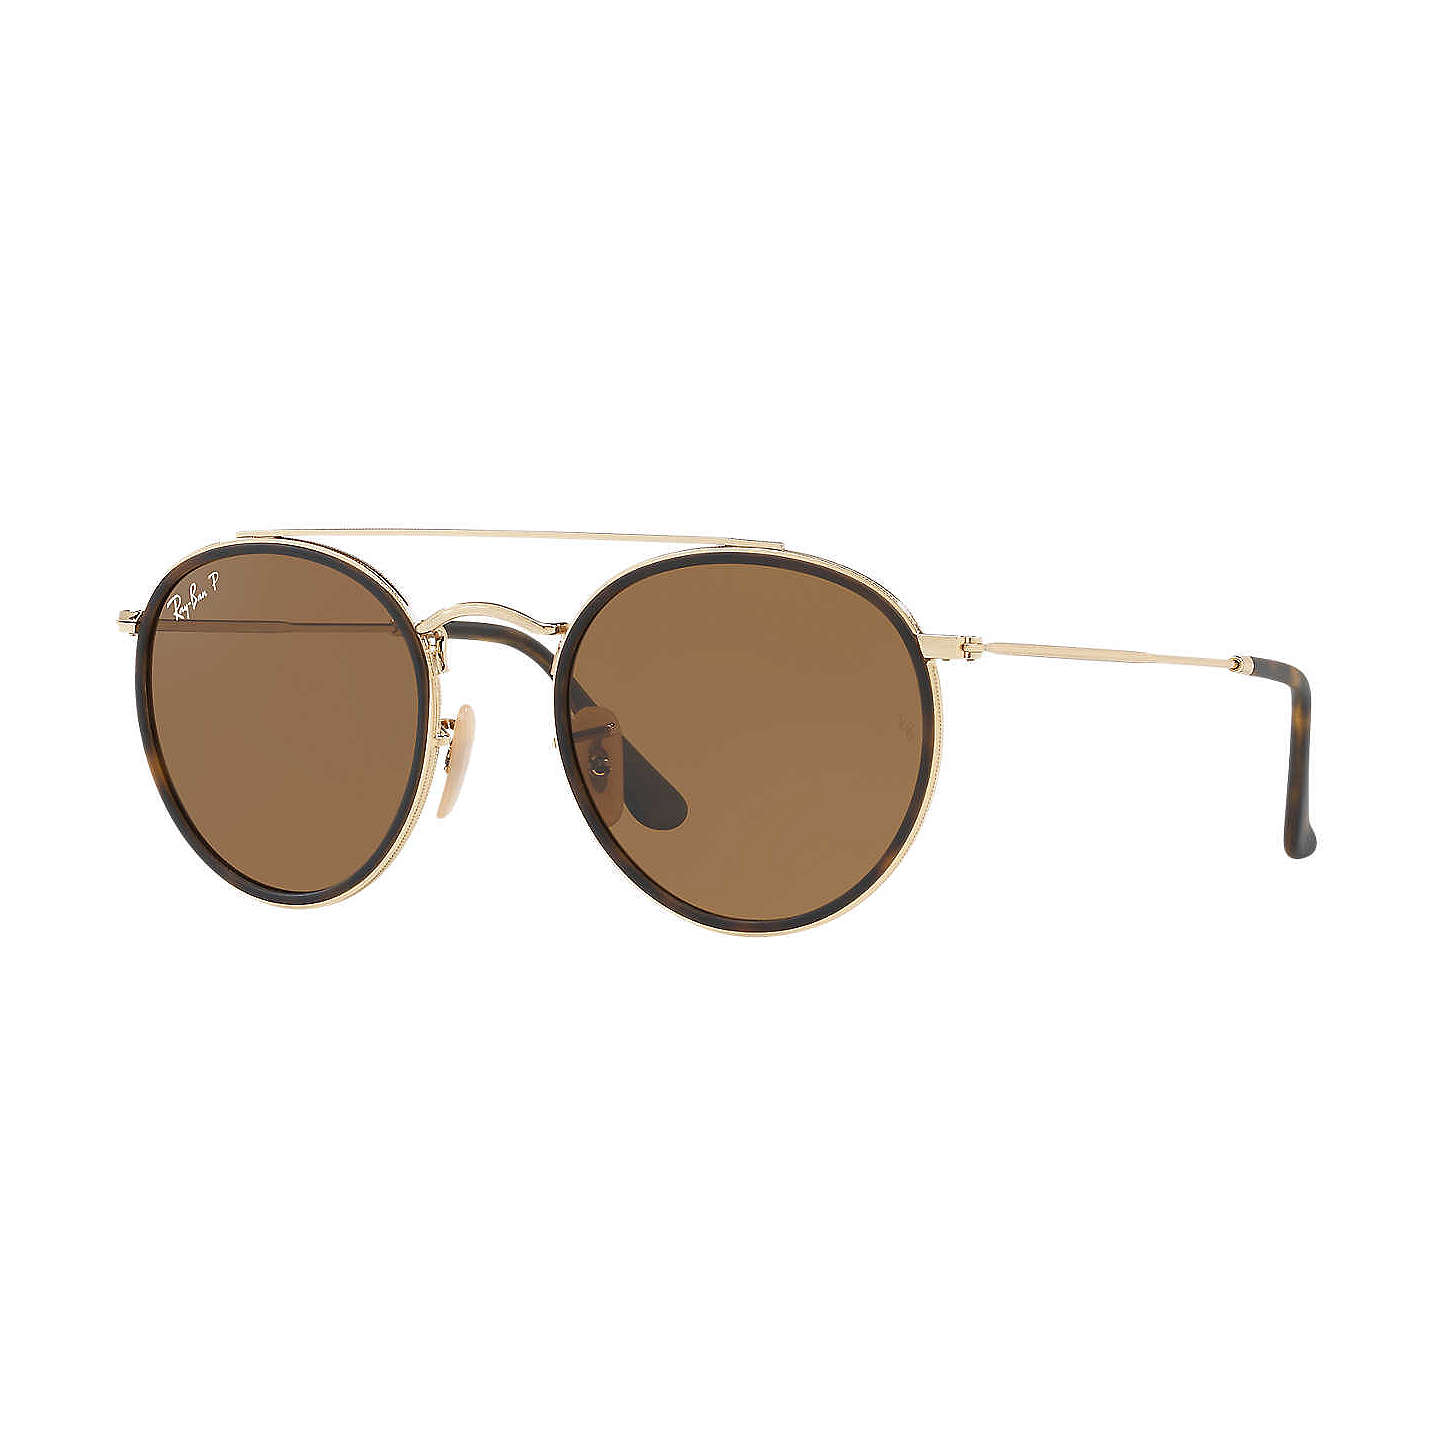 BuyRay-Ban RB3647N Polarised Double Bridge Round Sunglasses, Tortoise/Brown Online at johnlewis.com